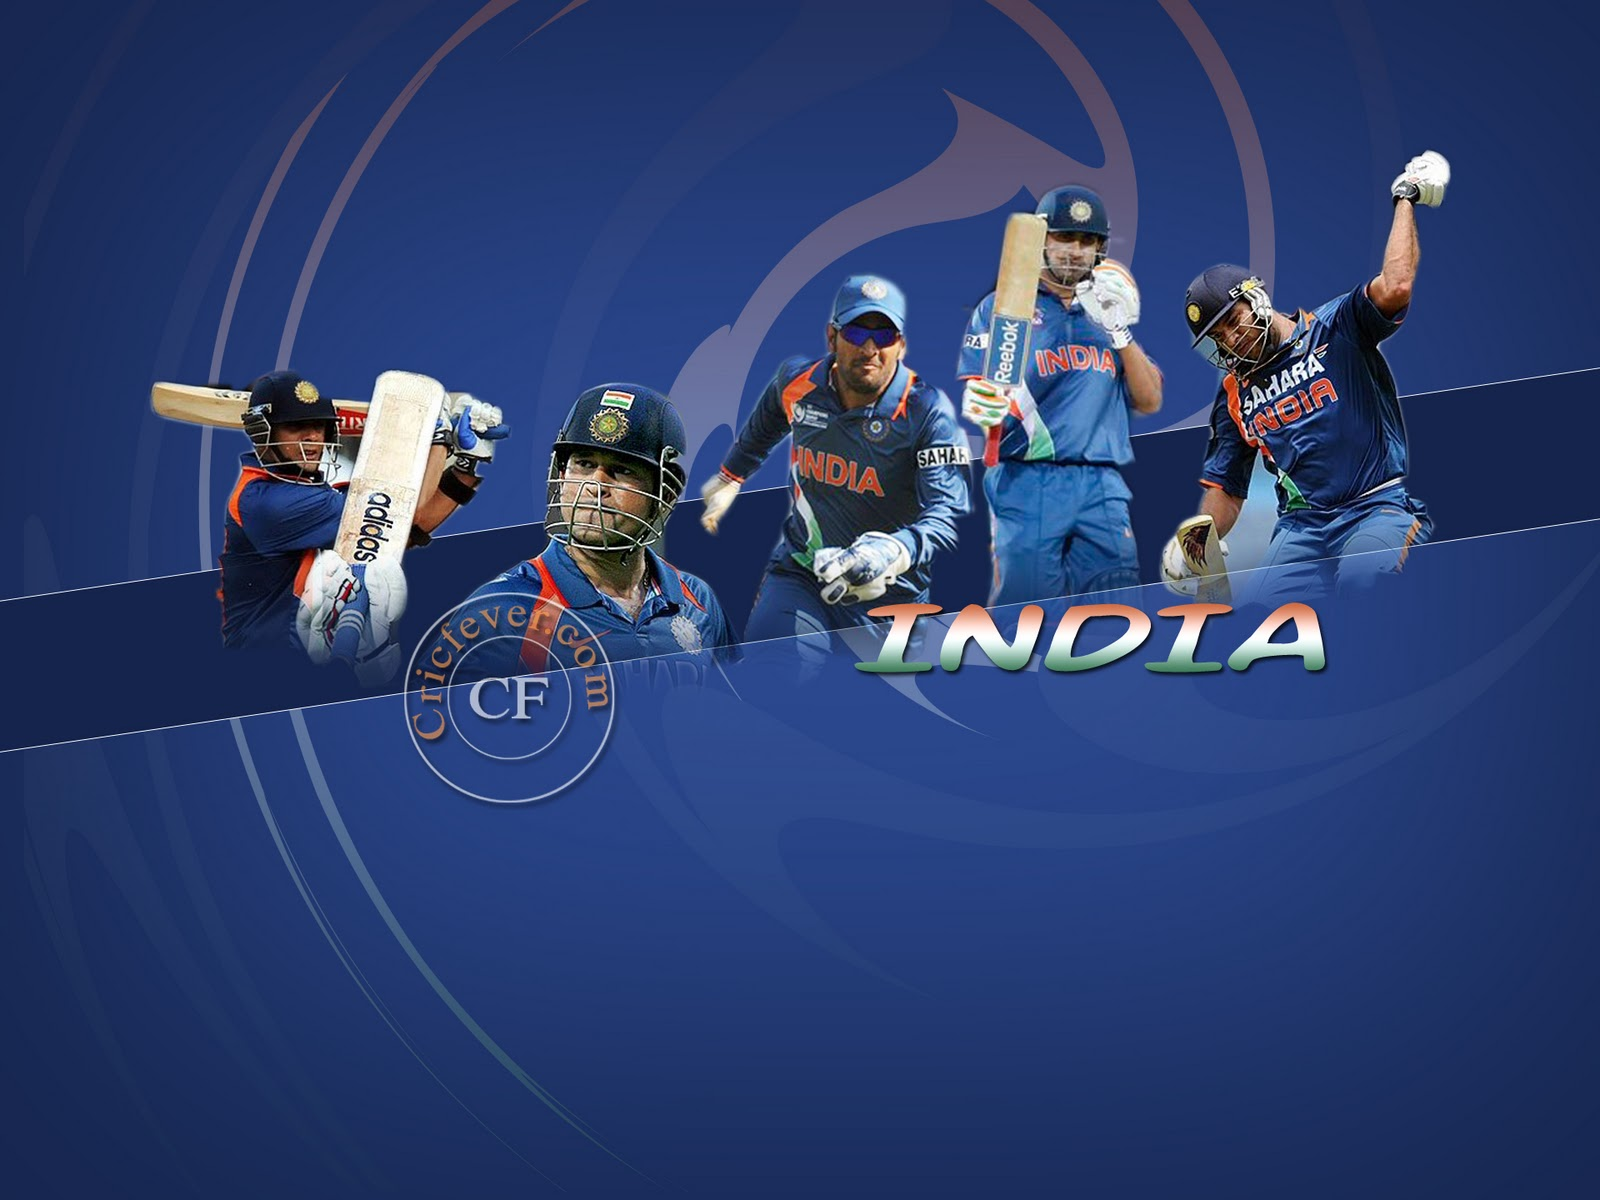 WallpapersHd Cricket WallpaperNew Cricket WallpapersLive Cricket 1600x1200